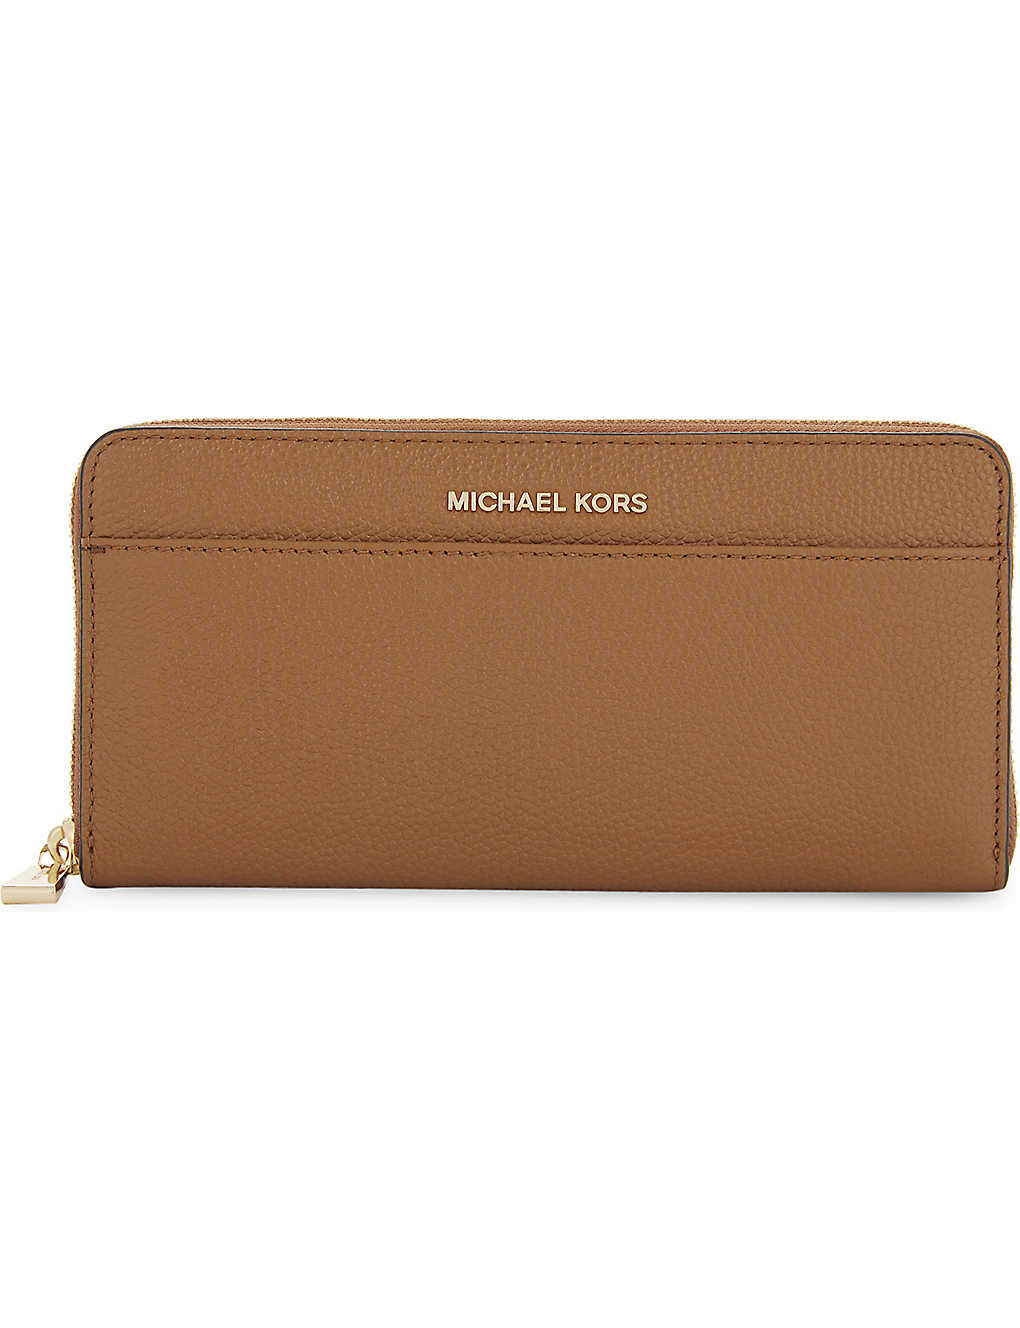 df5f8508a8f7ae MICHAEL MICHAEL KORS - Mercer continental leather wallet ...